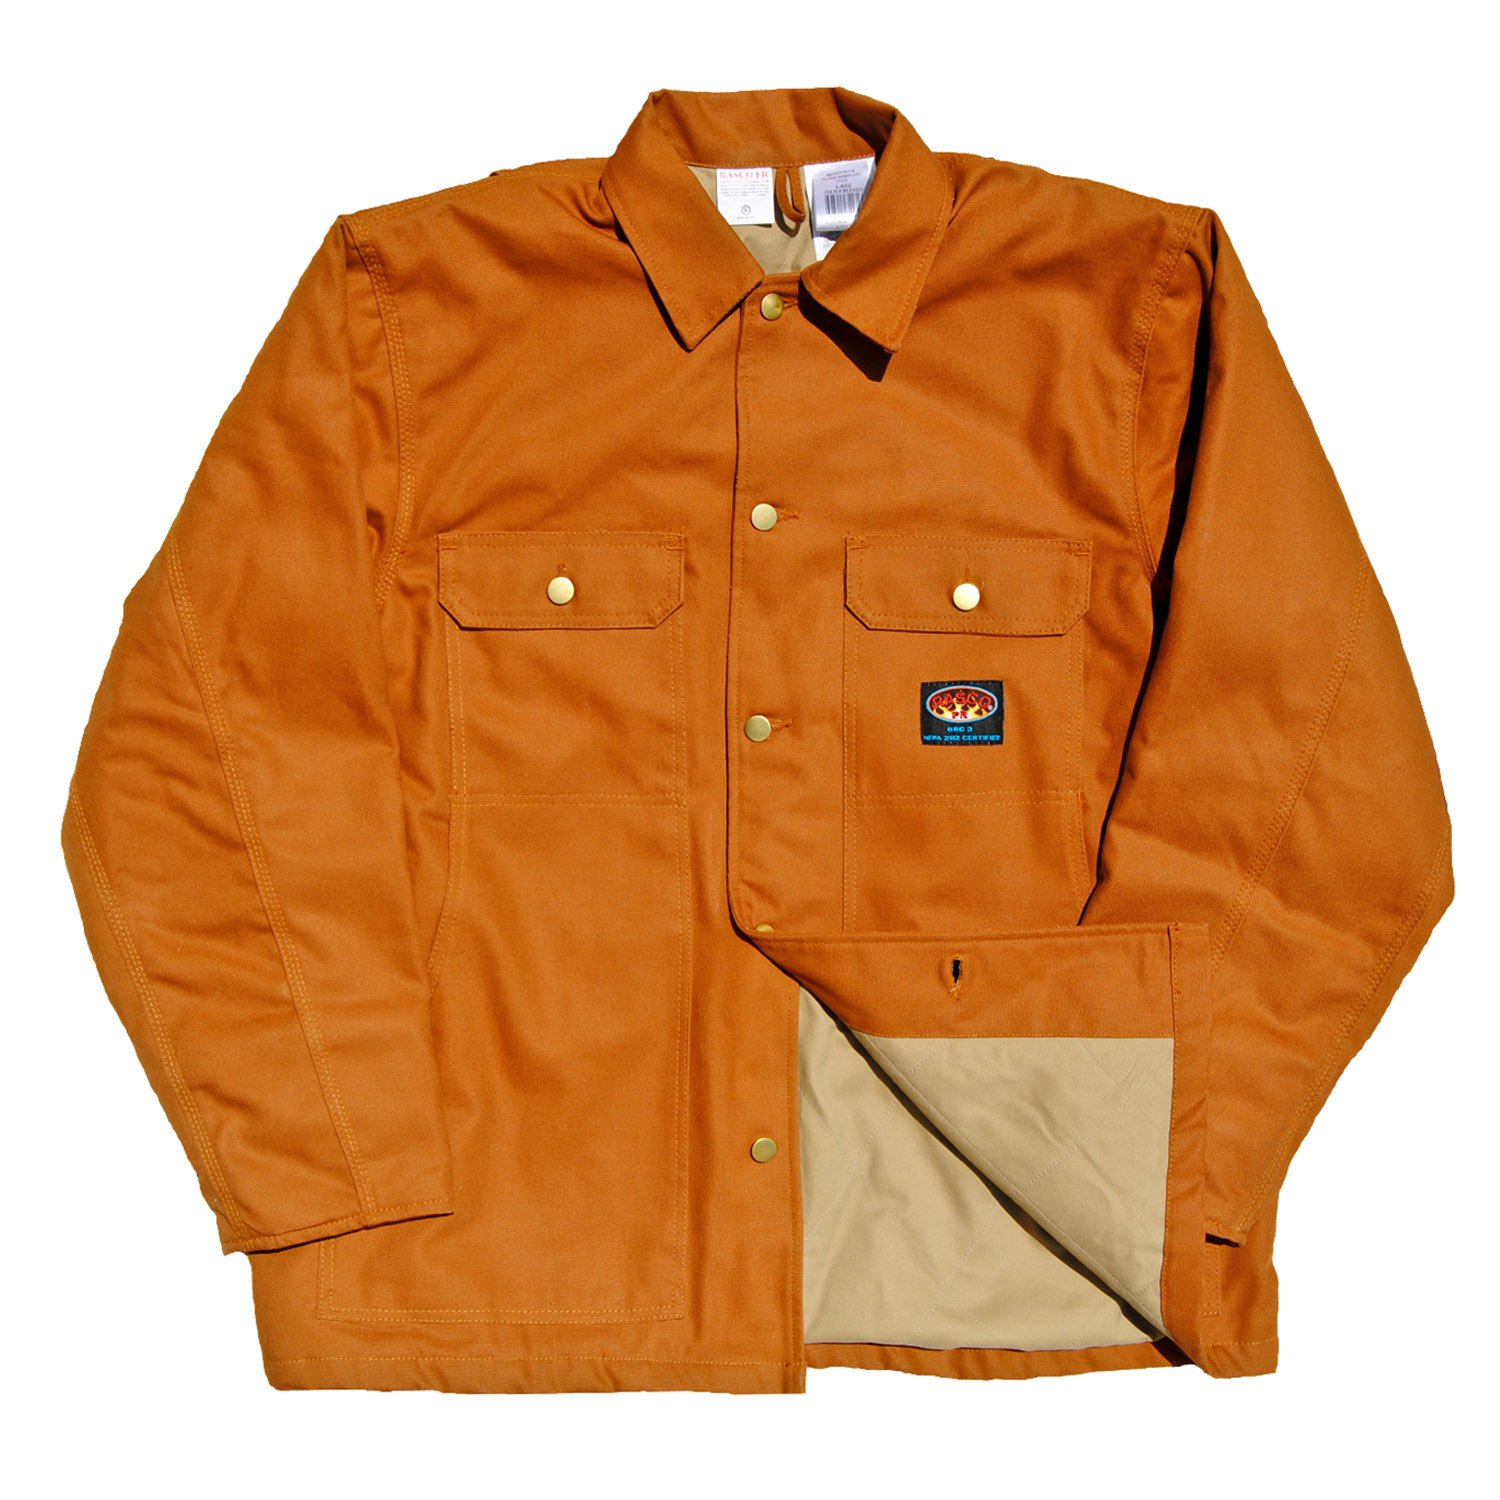 Rasco FR Brown Duck Quilted Chore Coat BCFQ1213 Flame Resistant Jacket